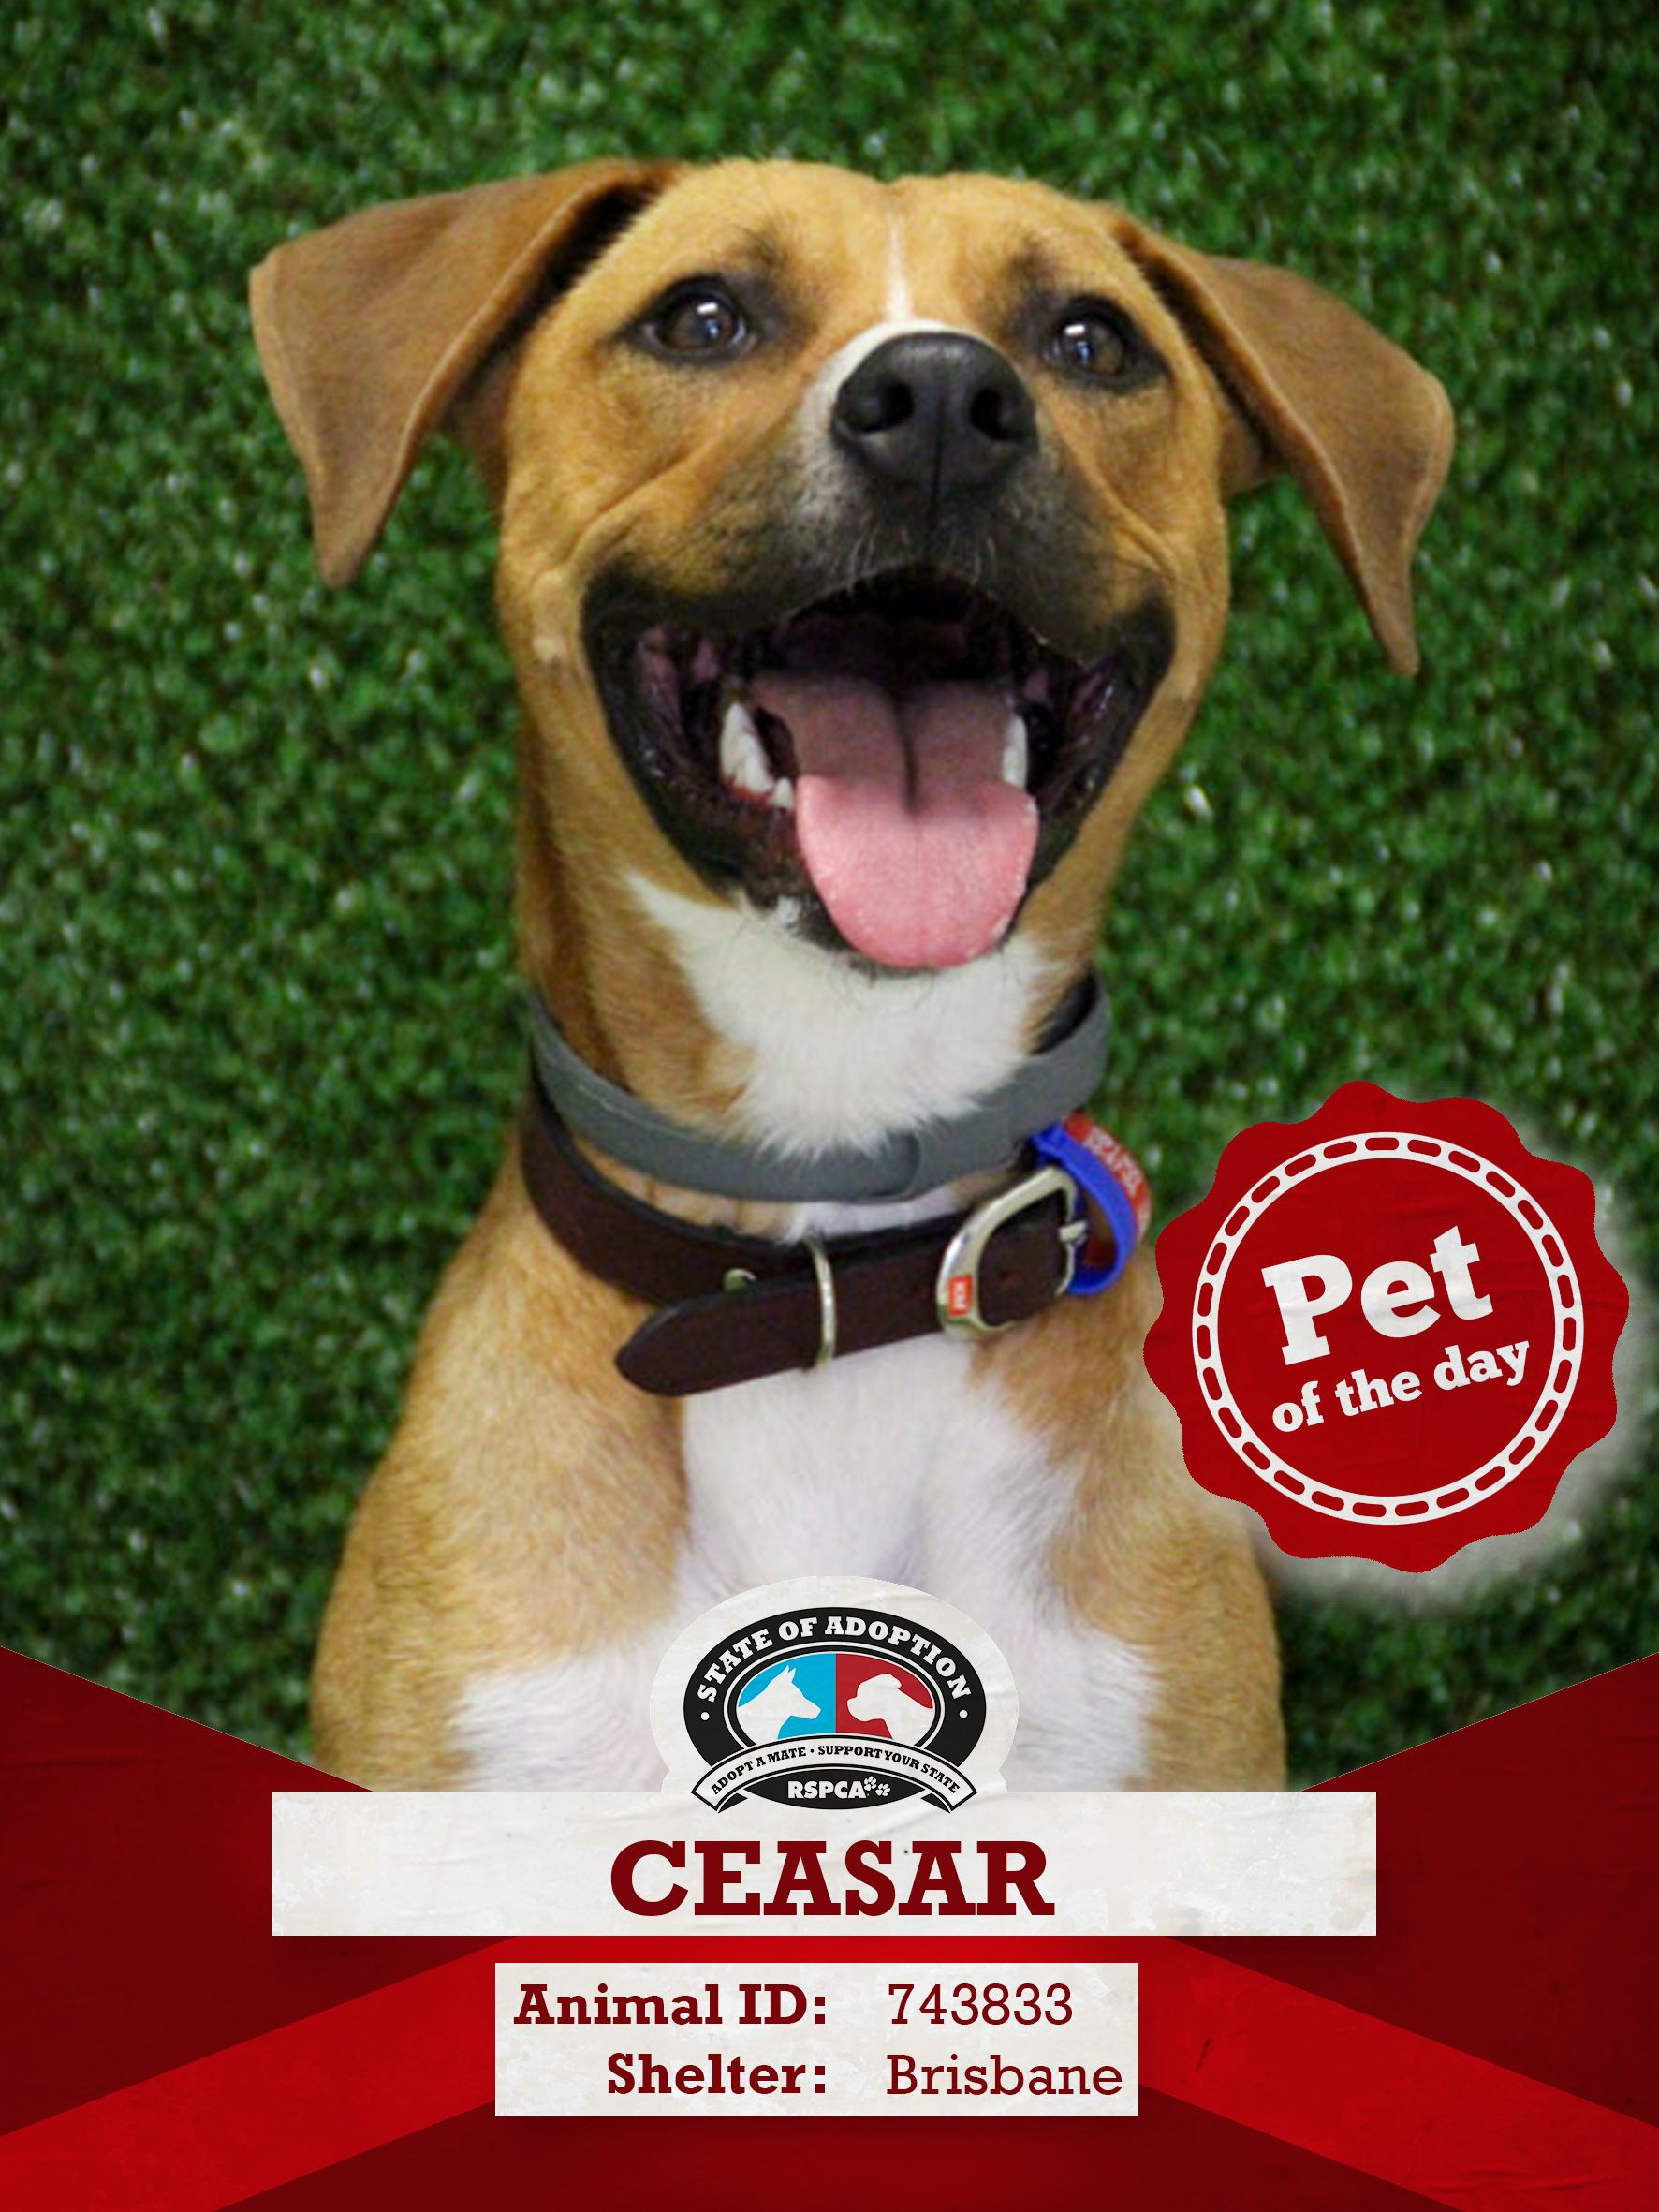 Can You Believe That This Adorable Pooch Ceasar Has Been In Rspca Care For 166 Days That S Too Long For A Handsome Man Like This If You Adopted Pinte